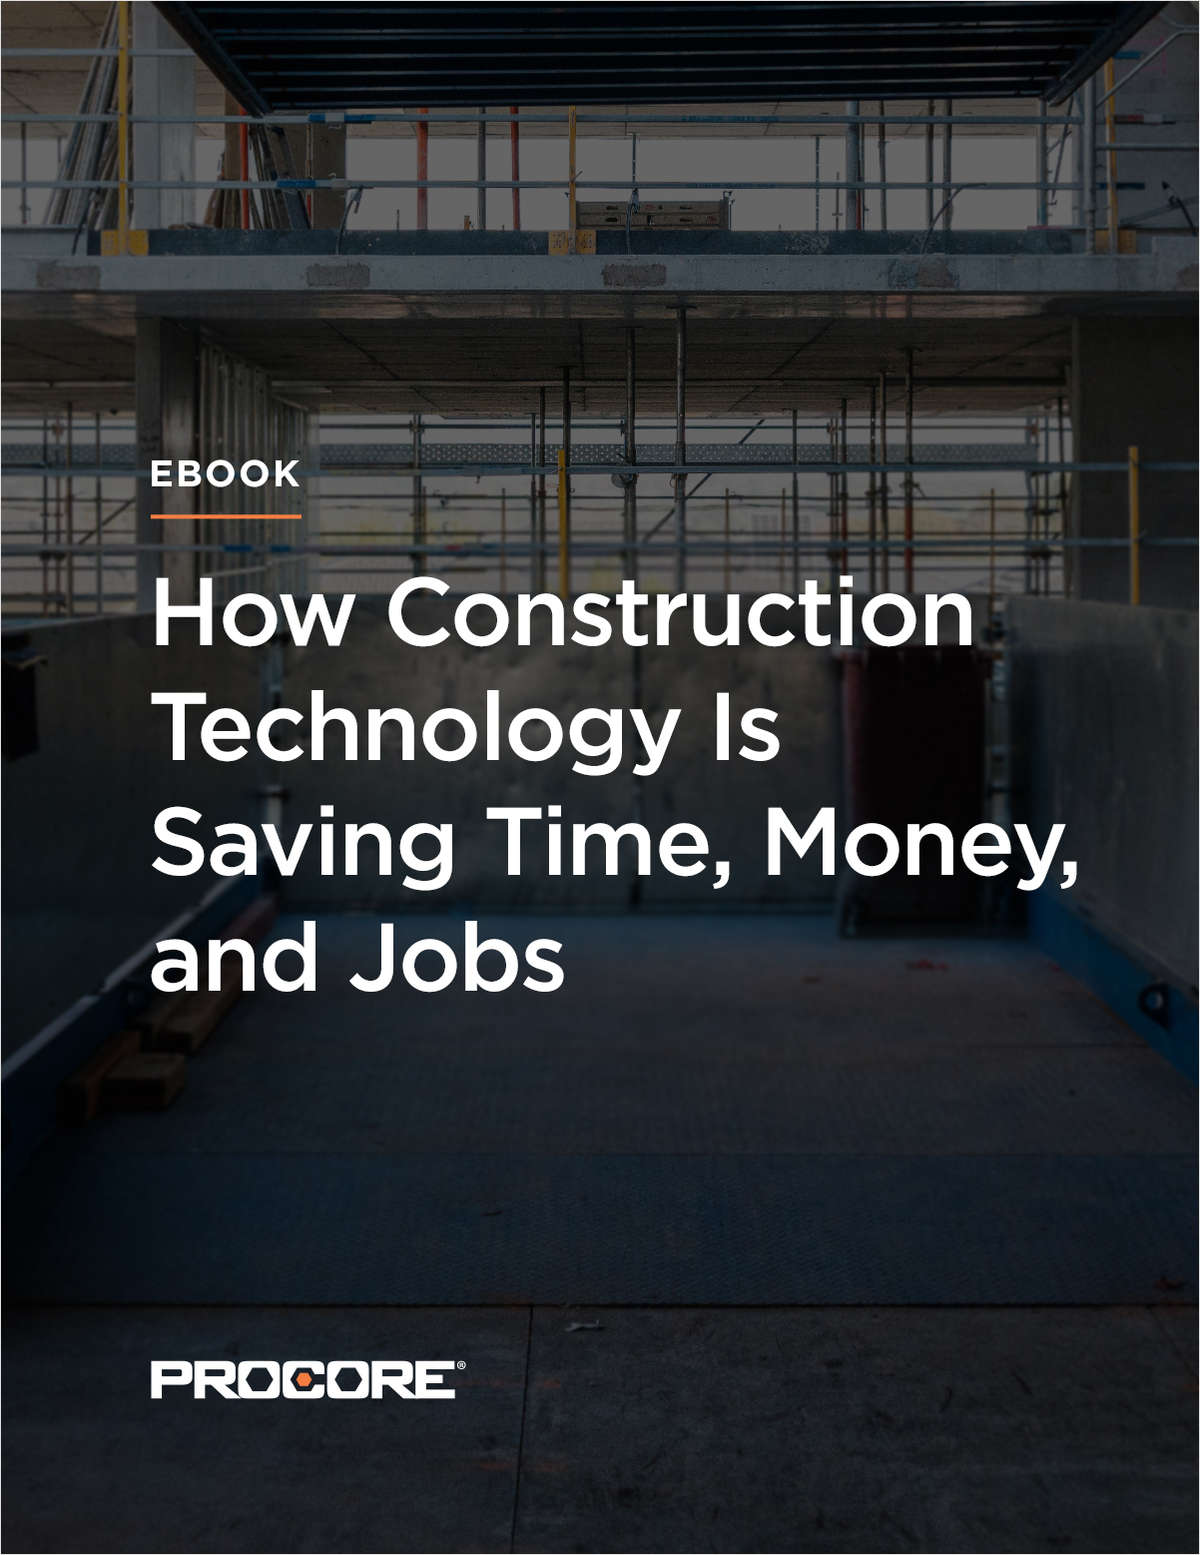 How Construction Technology is Saving Time, Money, and Jobs